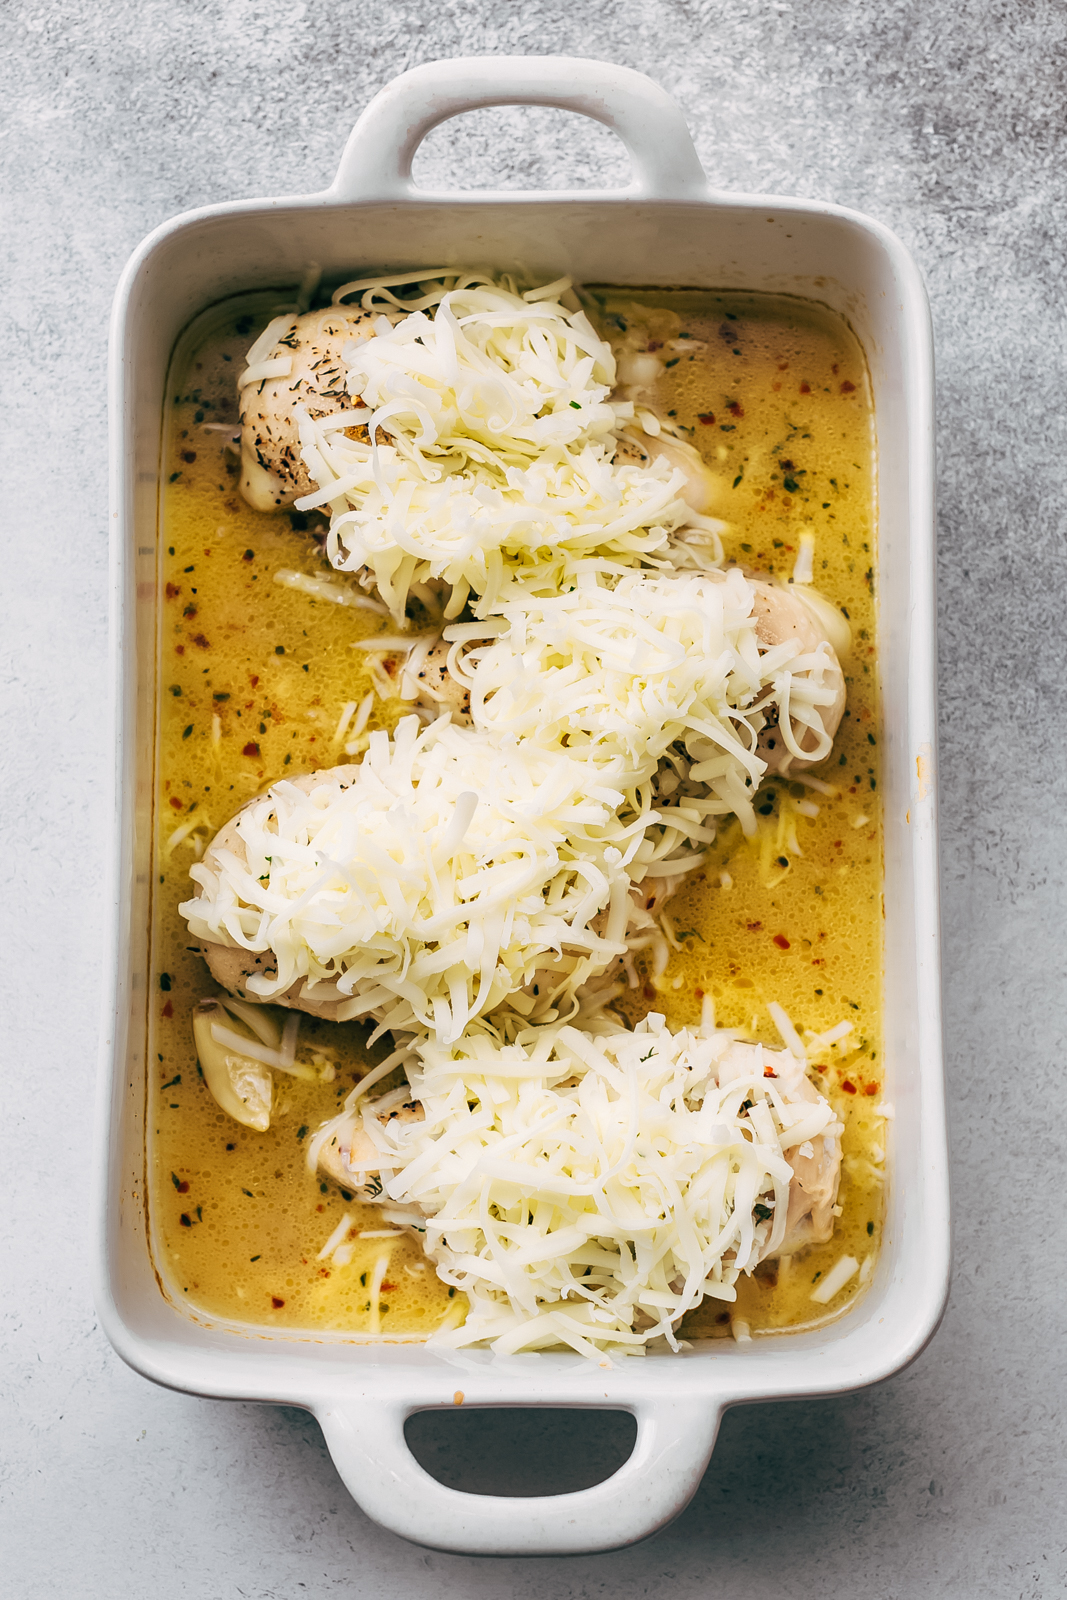 half-baked chicken topped with shredded mozzarella cheese in white baking dish